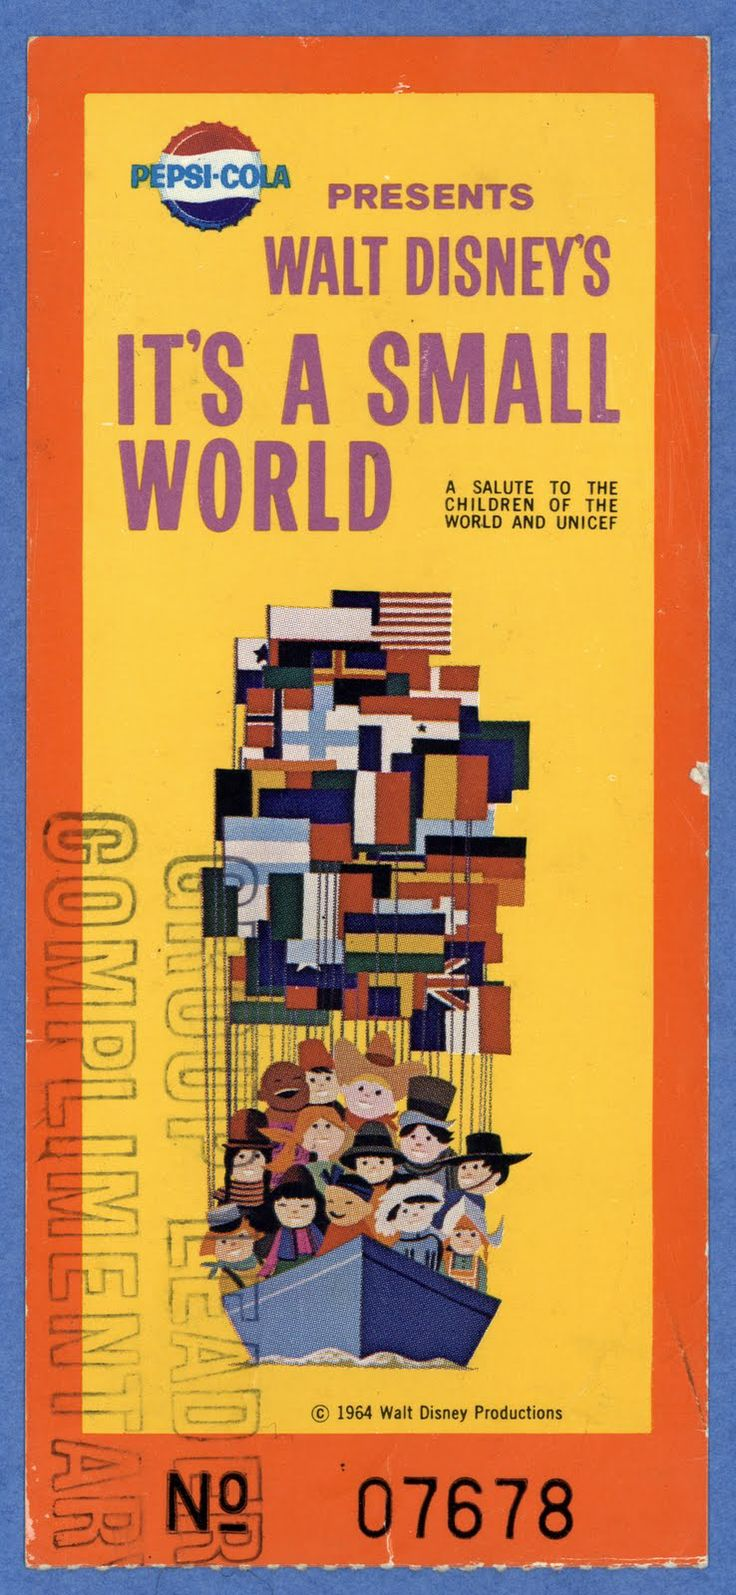 """Ticket to """"It's a Small World"""" as it appeared at the NY World's Fair in 1964. After the Fair it was moved to Disneyland, then replicated at Magic Kingdom at Walt Disney World in Orlando."""